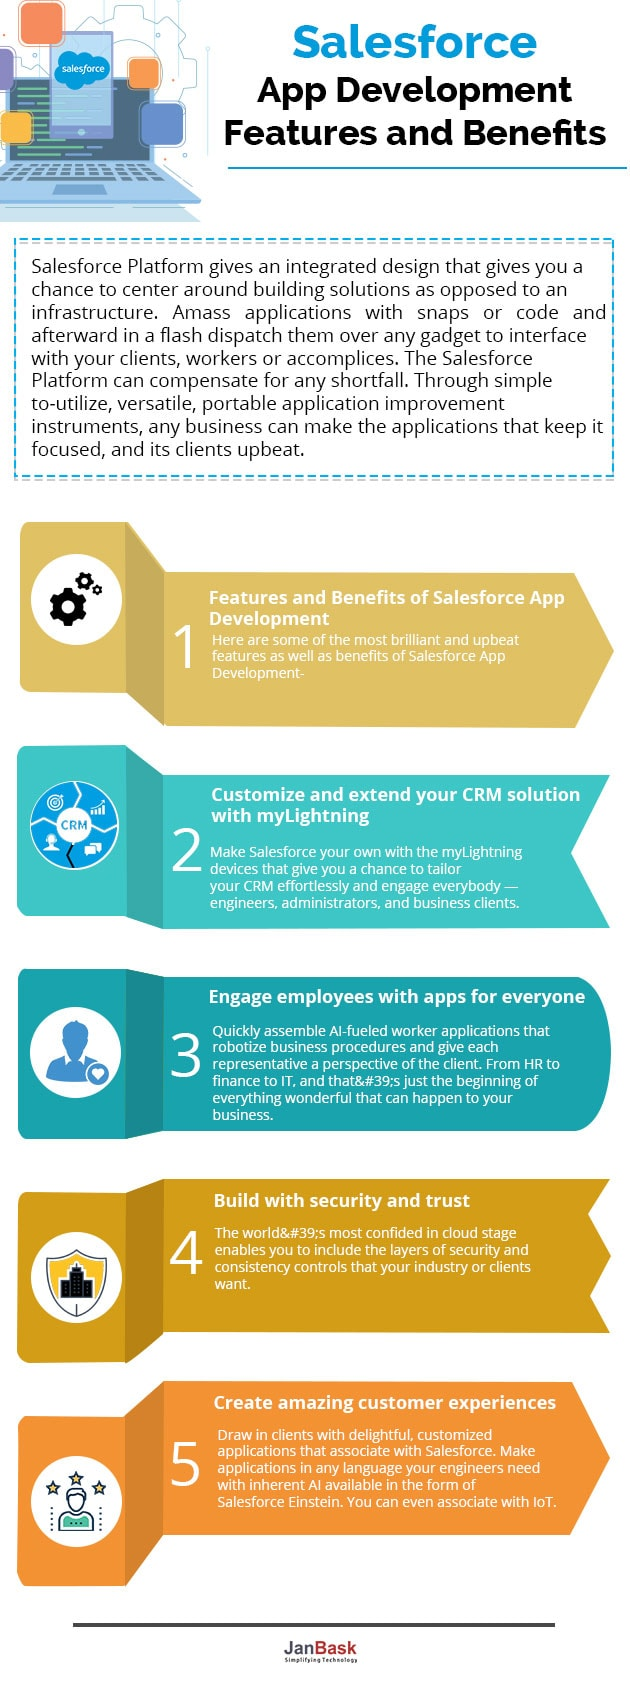 Infographic Salesforce – App Development Features and Benefits